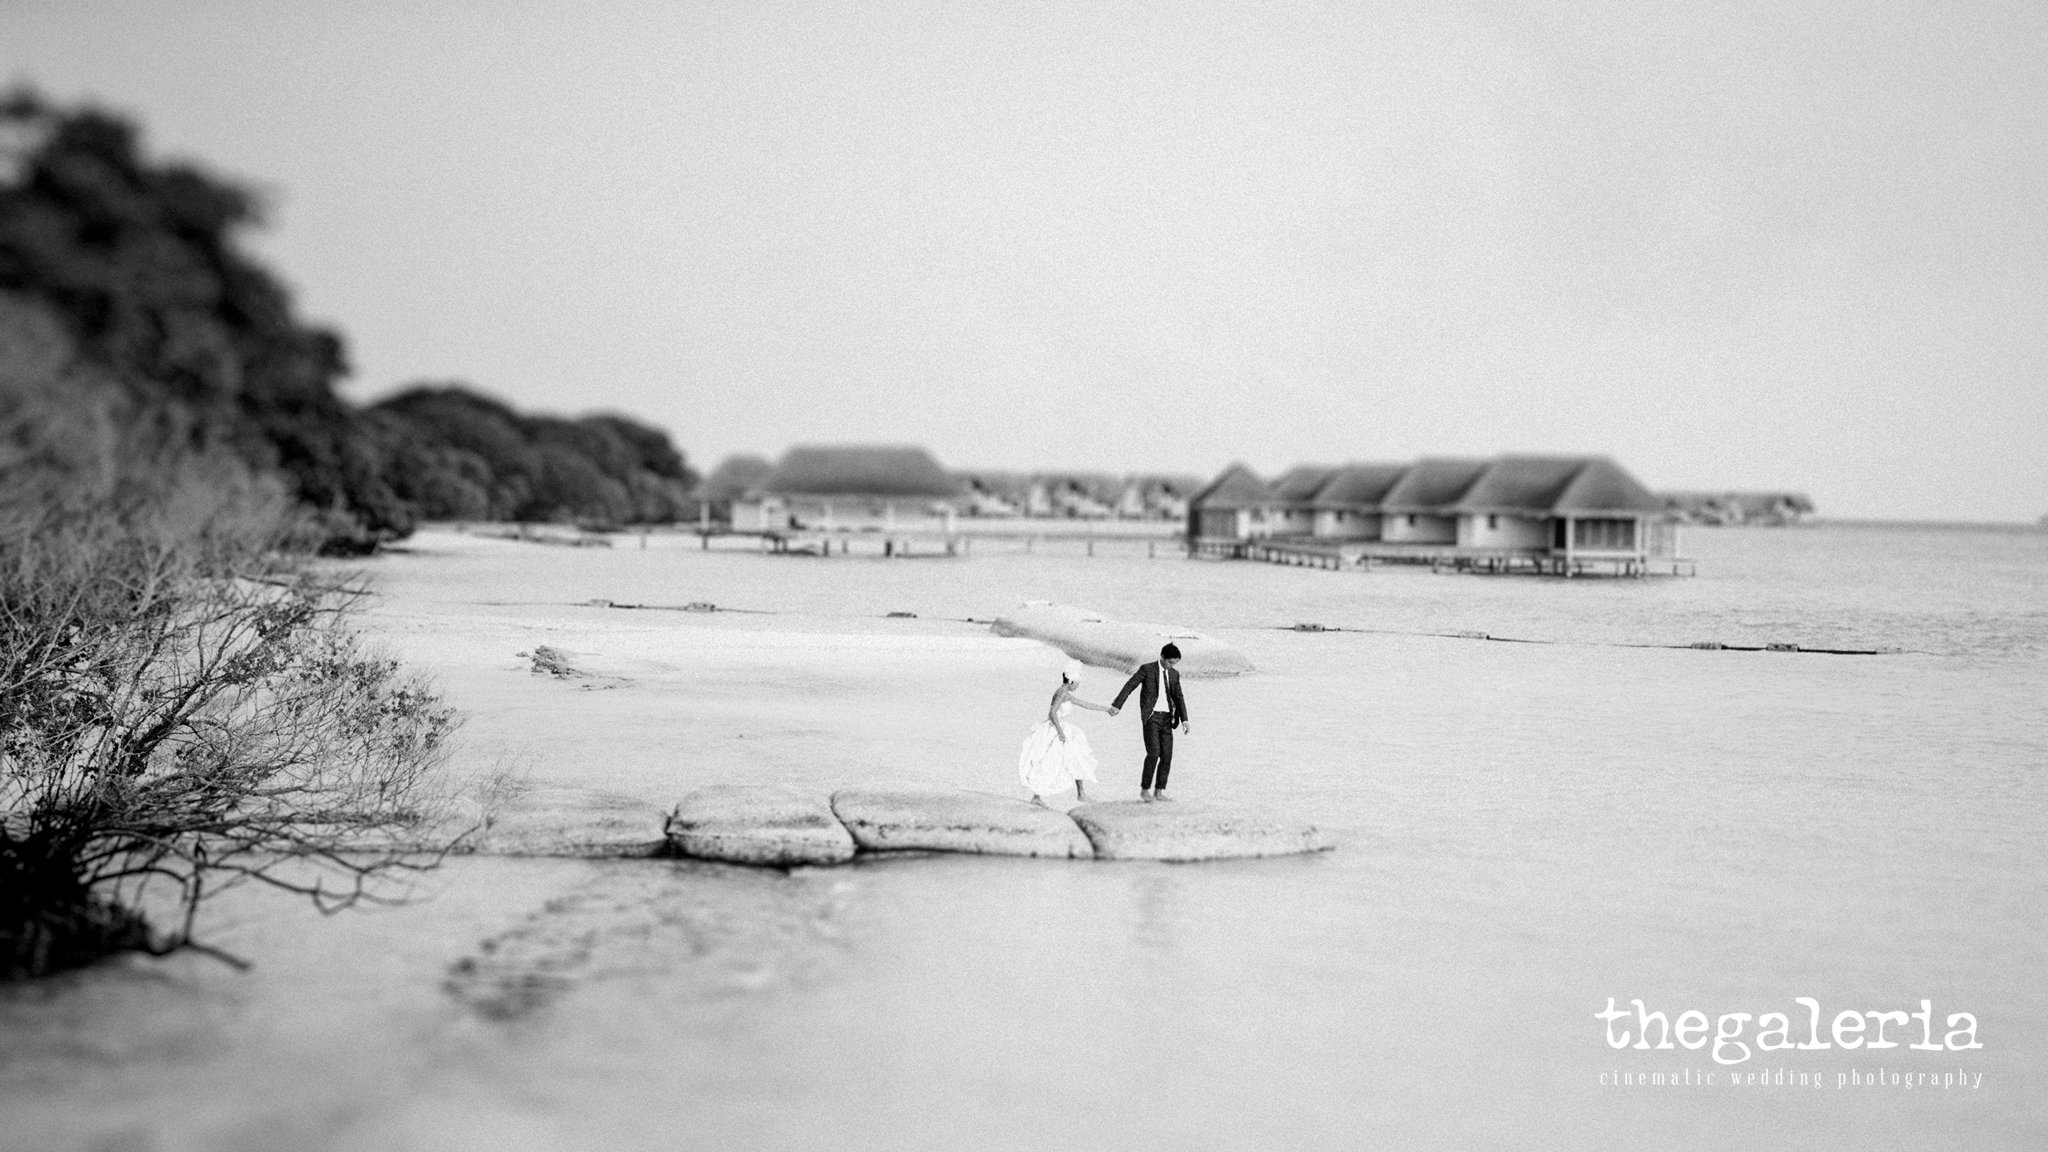 Maldives Pre-Wedding & Destination Weddings by Film Wedding Photographer Brian Ho from thegaleria. Film: Ilford Delta 100